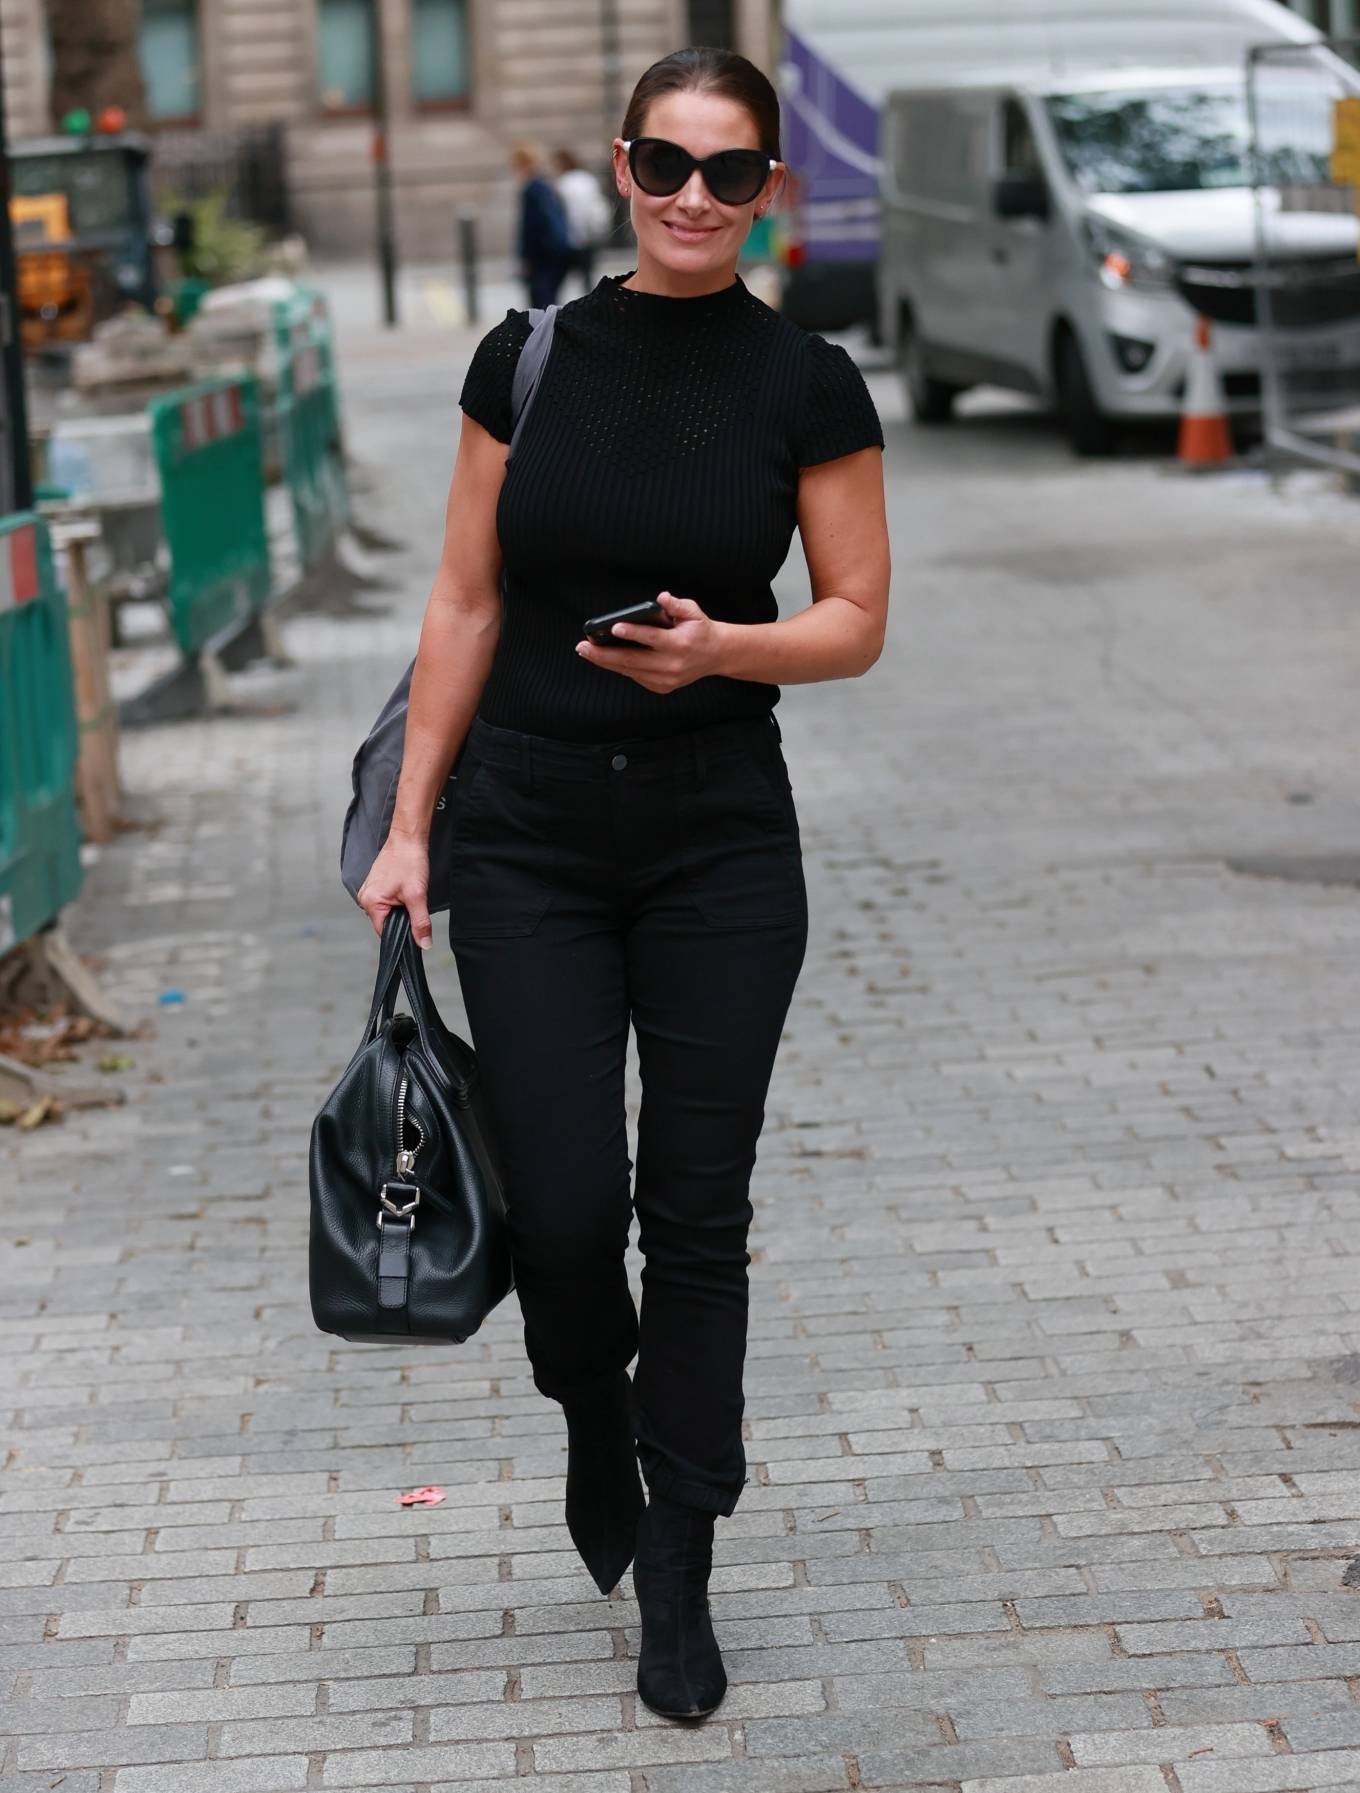 Kirsty Gallacher 2020 : Kirsty Gallacher in skin tight jeans and boots at Global Radio in London-14